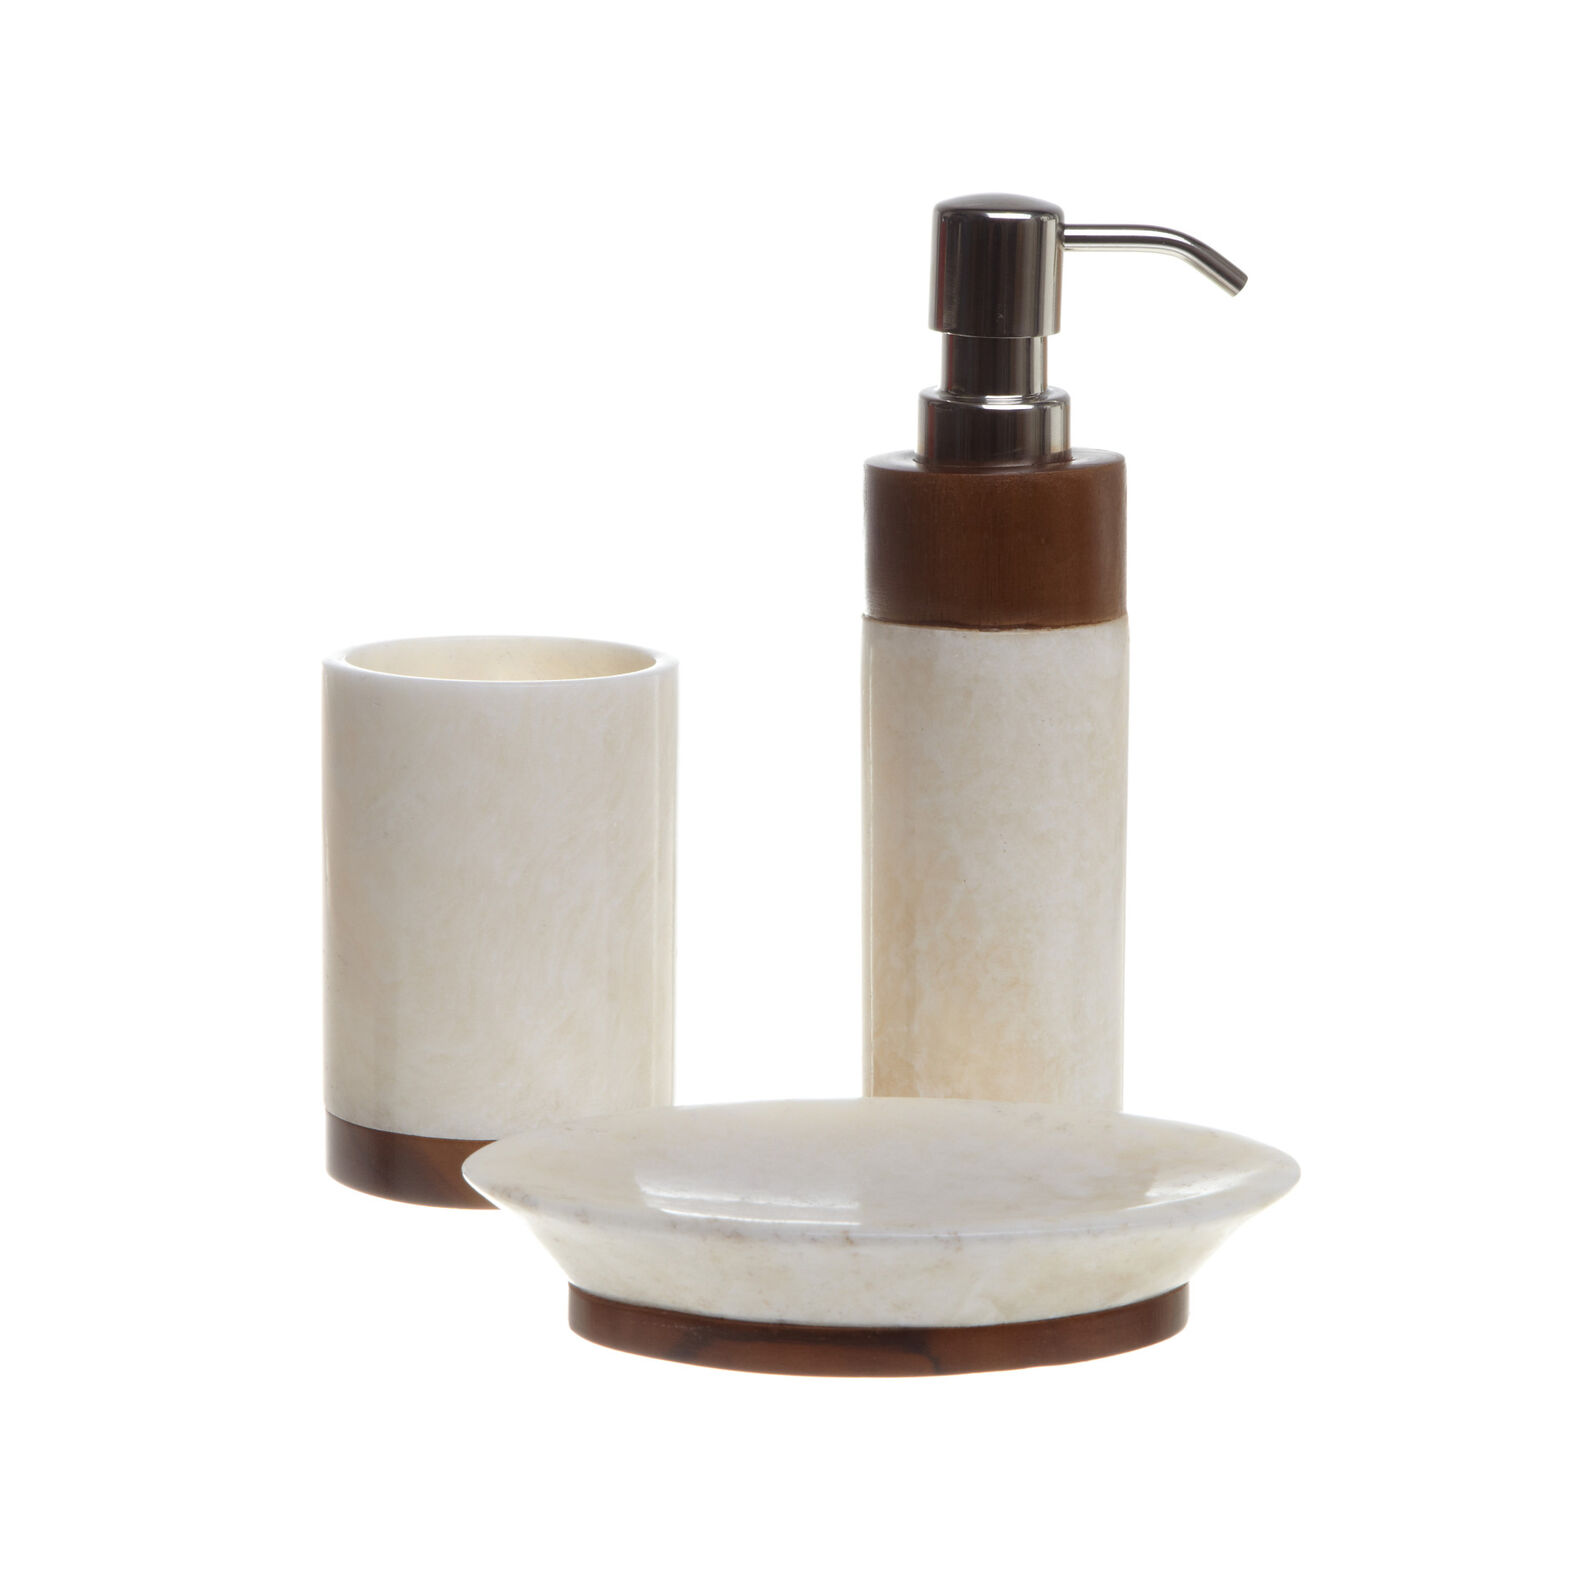 Teak and onyx bathroom set